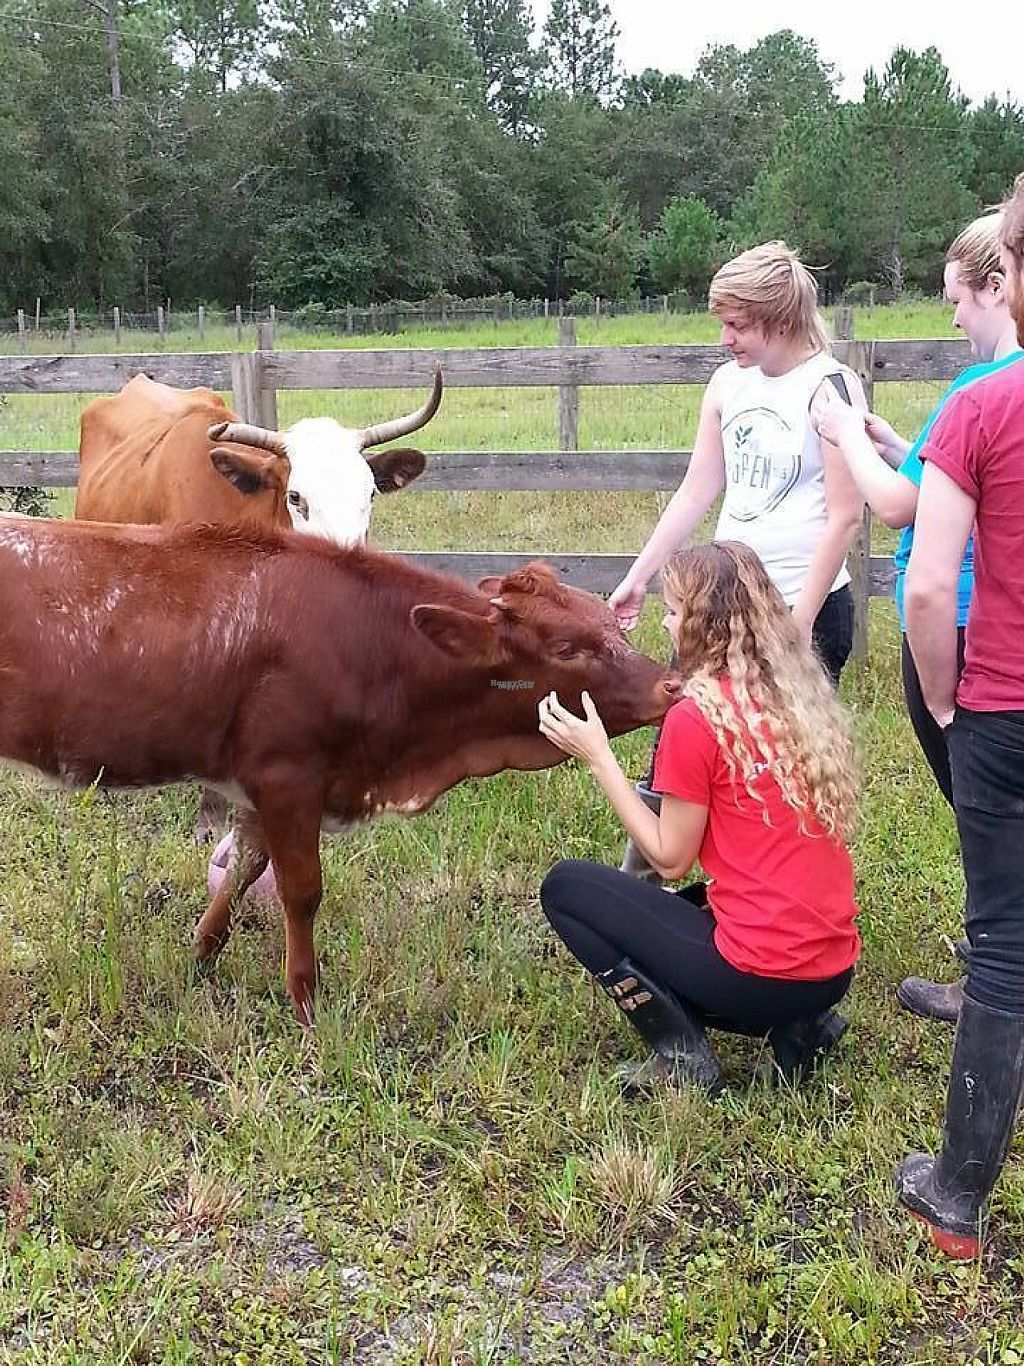 """Photo of CJ Acres Animal Rescue Farm  by <a href=""""/members/profile/EdwardElliott"""">EdwardElliott</a> <br/>Attending an """"Animal Caregiving"""" volunteer session is incredible. Check out opportunities at cjacres.org <br/> November 16, 2016  - <a href='/contact/abuse/image/44536/191025'>Report</a>"""